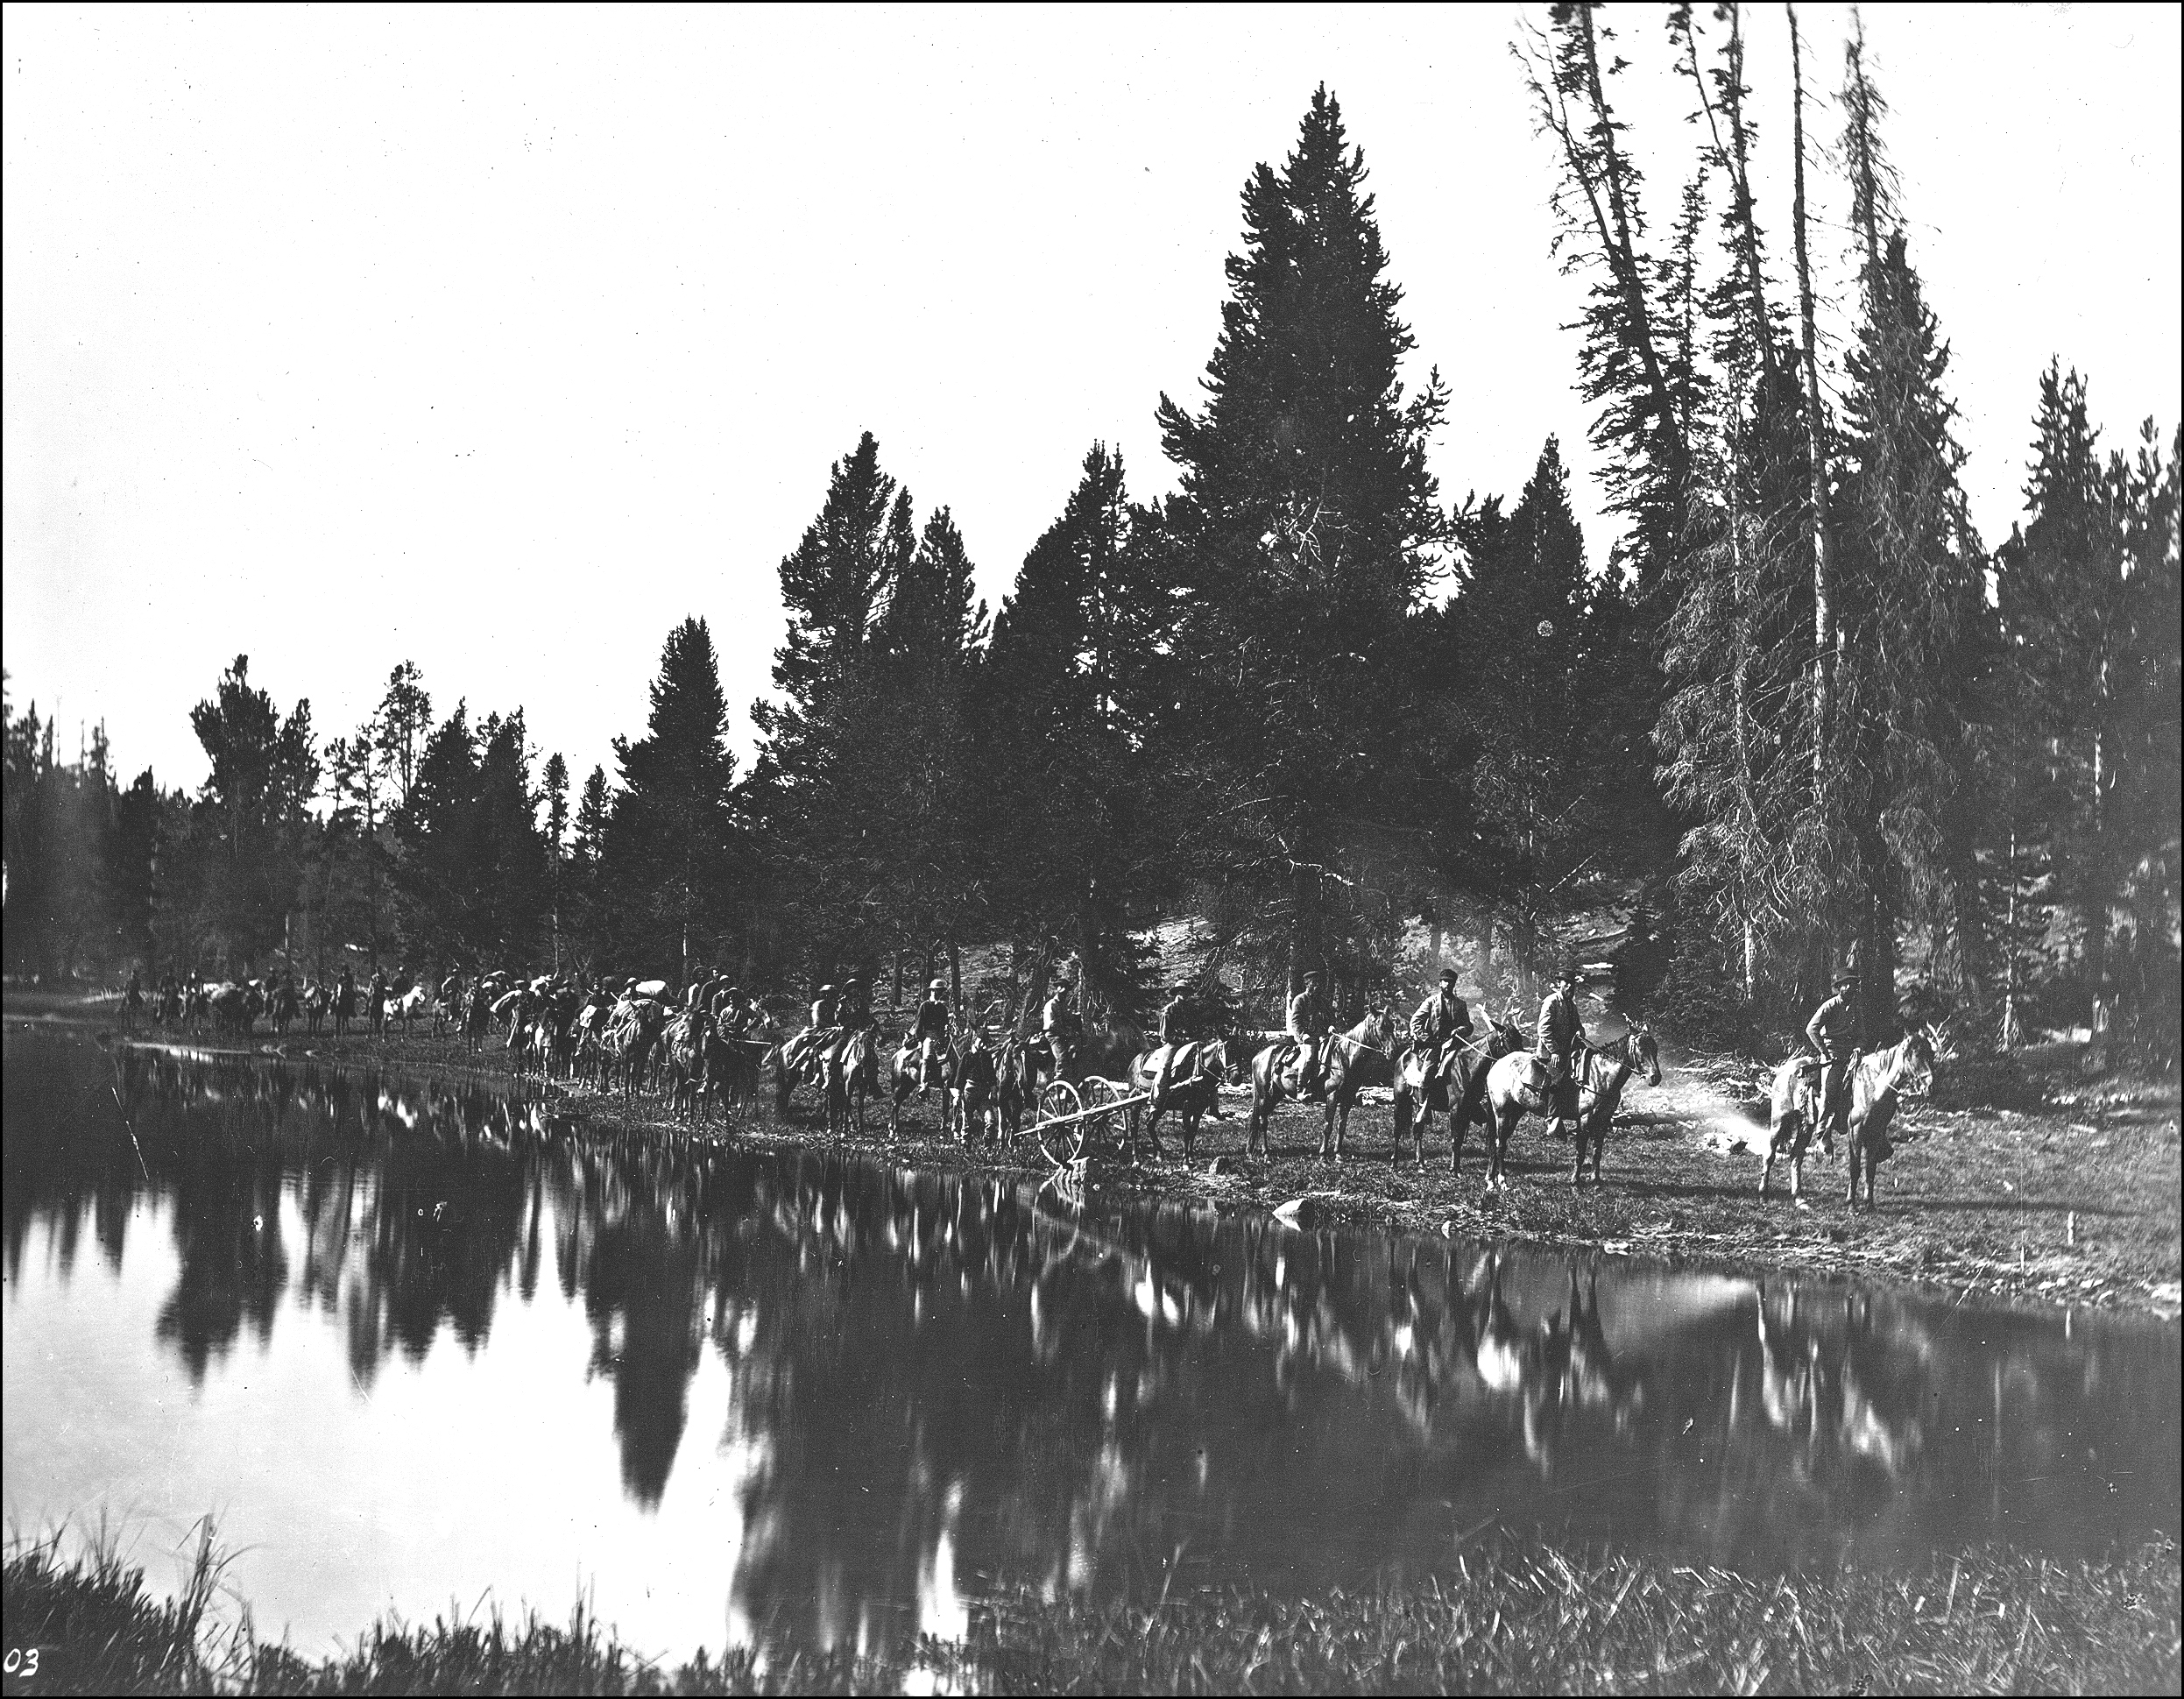 1871 Hayden Survey at Mirror Lake